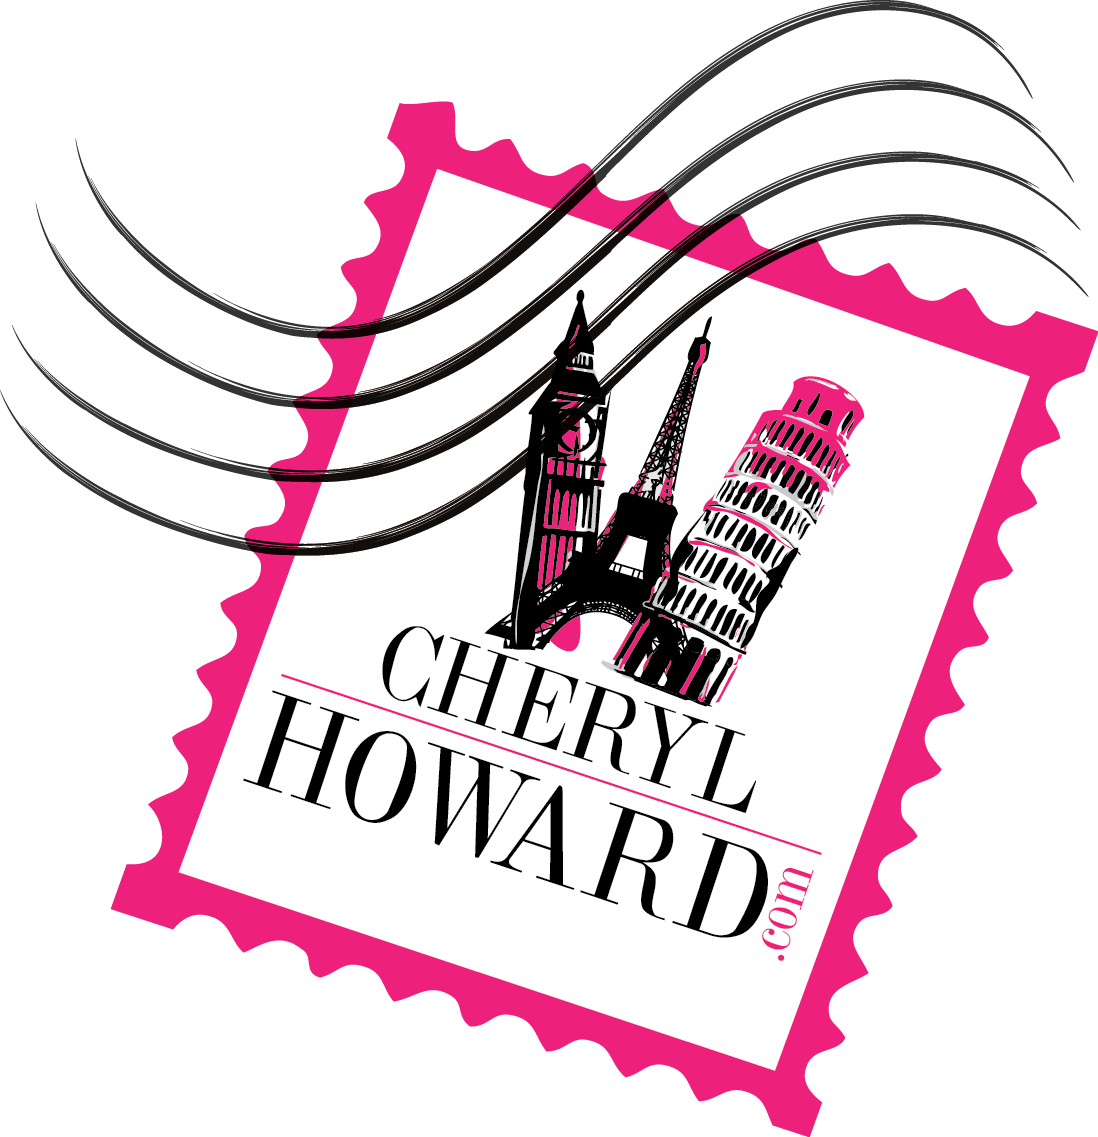 cherylhoward.com Stamp